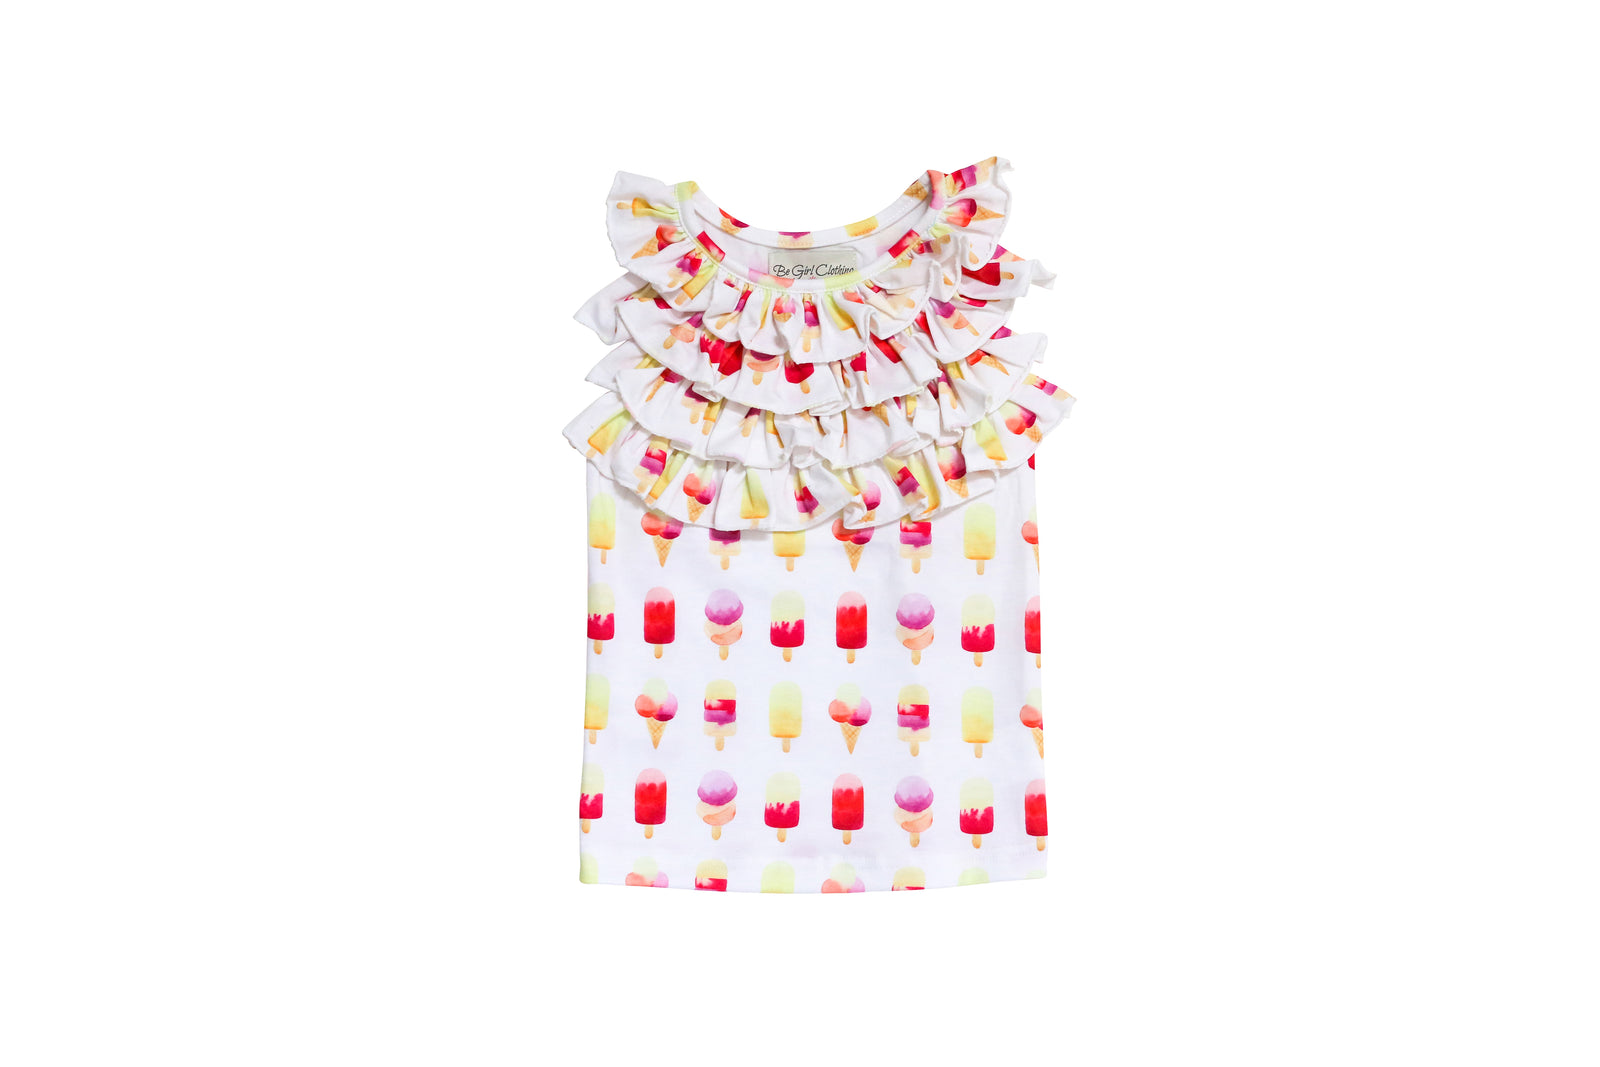 PLAYTIME FAVORITES- Courtyard Ruffle Top (Popsicle) - Be Girl Clothing